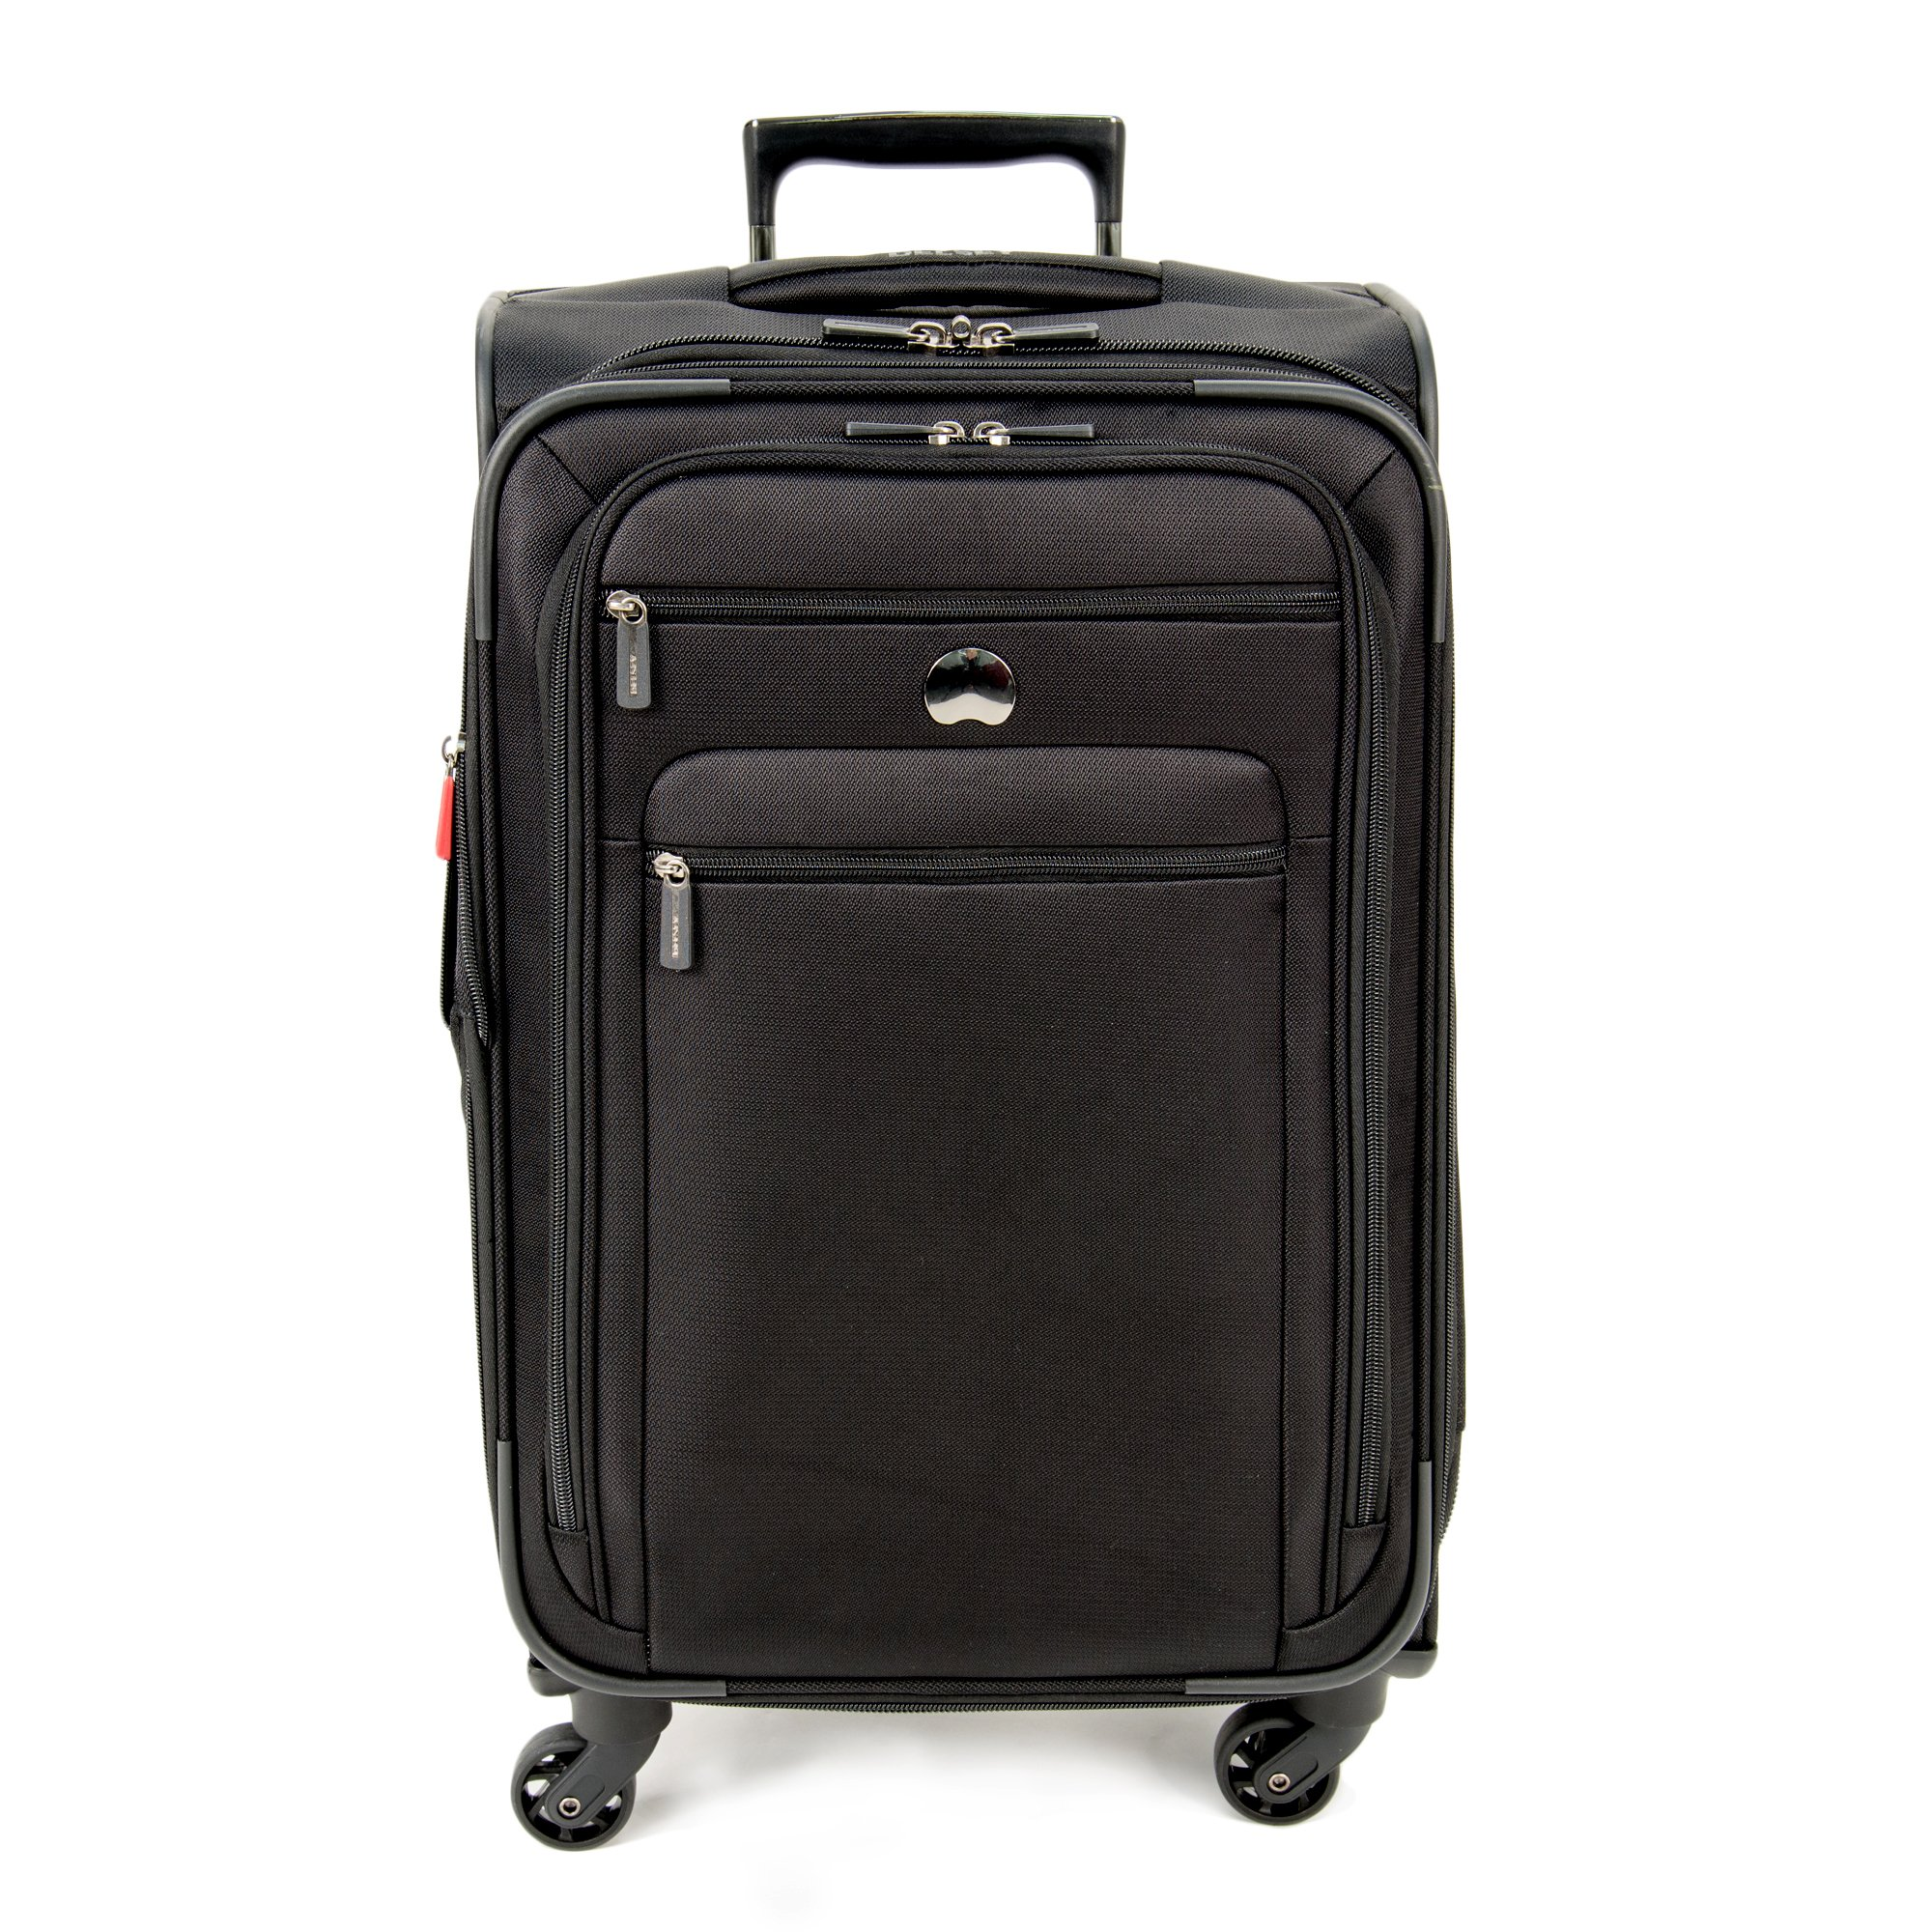 Delsey Luggage Helium Sky 2.0 25'' Expandable Spinner Trolley Suitcase by DELSEY Paris